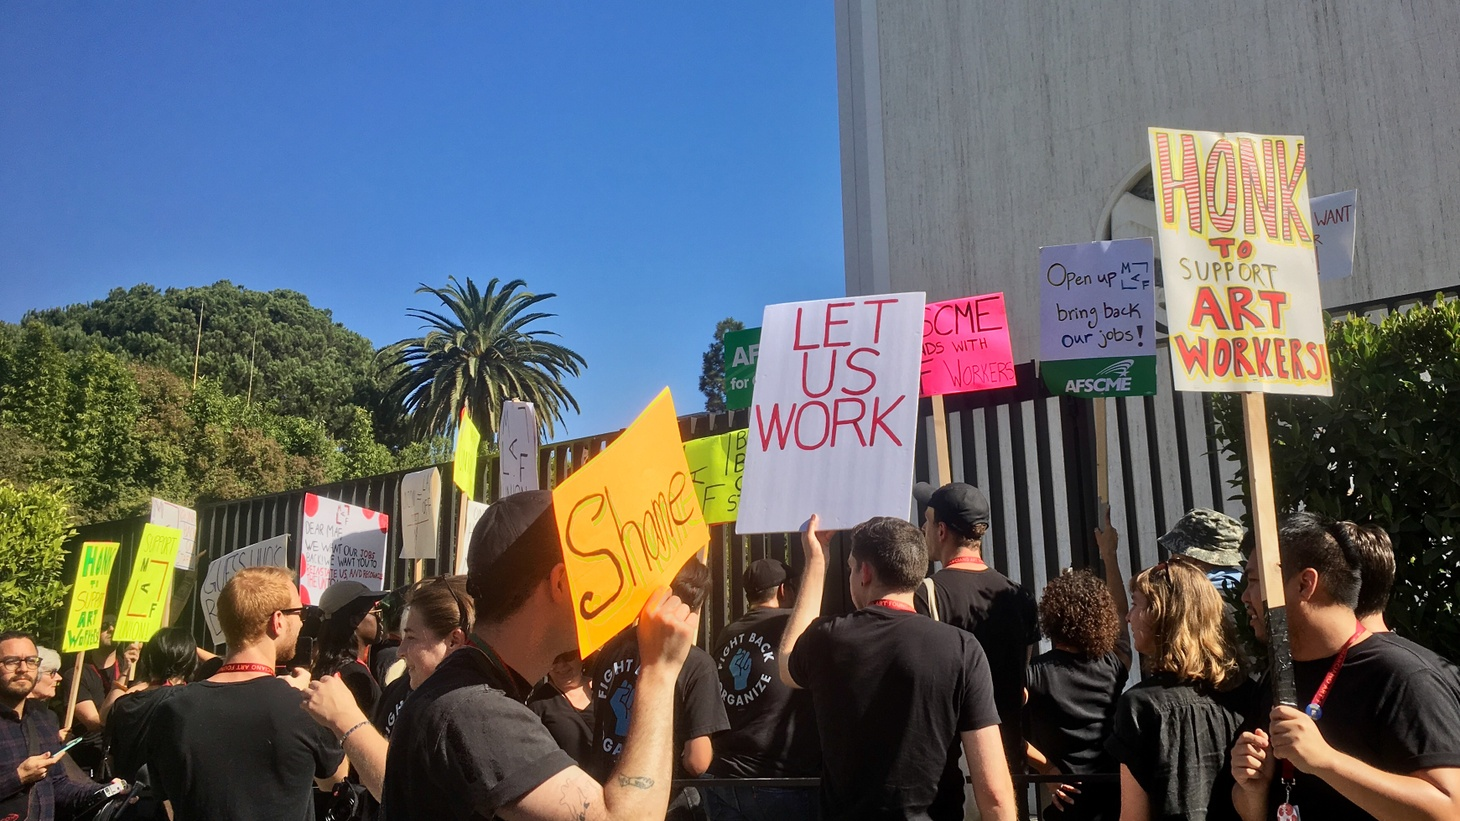 More than 60 laid off employees demanded to be let back into work on Nov. 8 at the Marciano Art Foundation in Mid City.